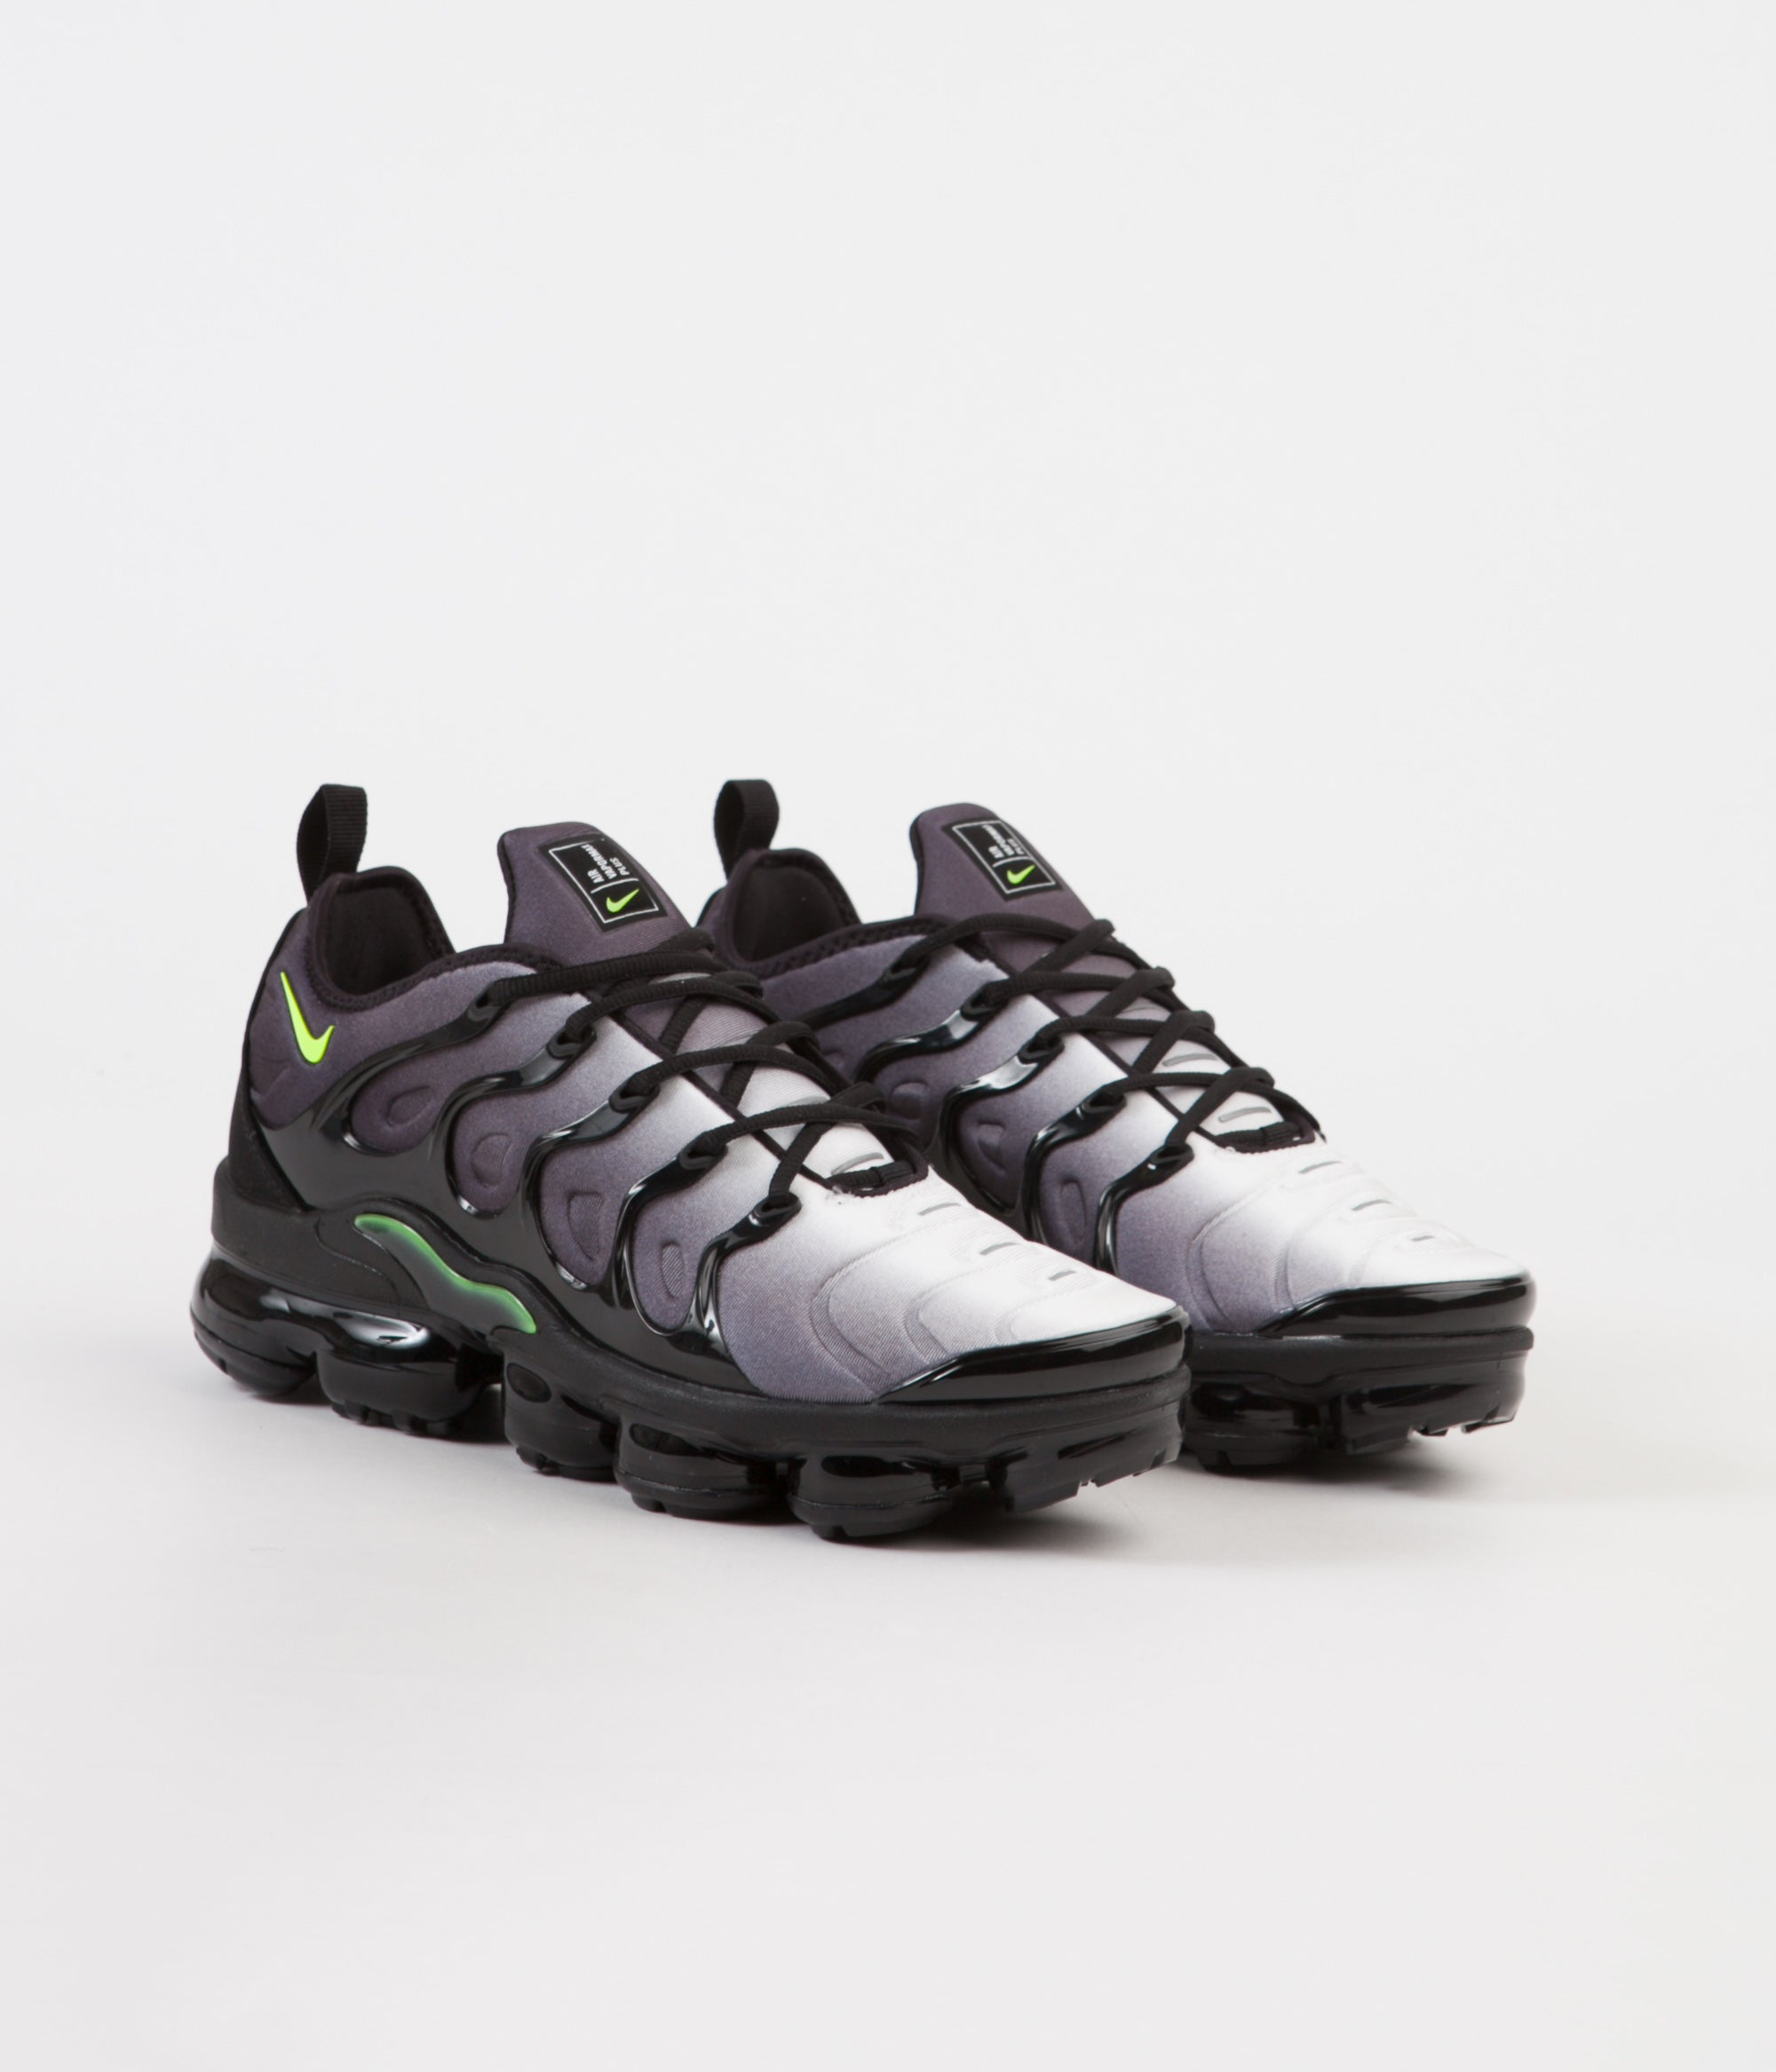 a10cd9db1663 ... Nike Air VaporMax Plus Shoes - Black   Volt - White ...